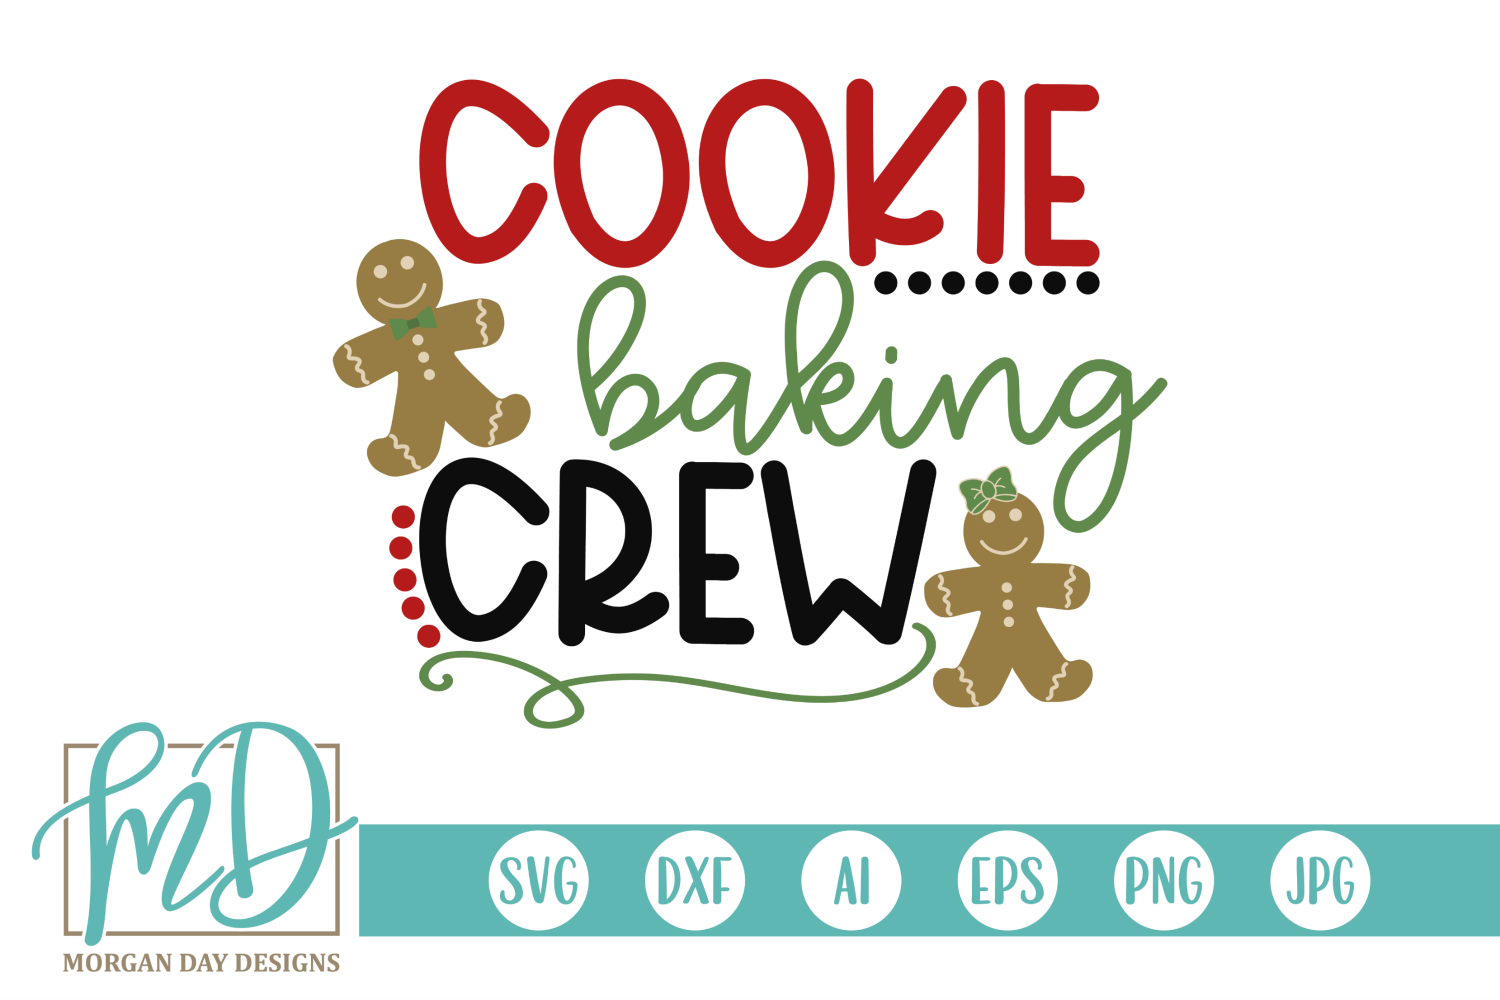 Download Free Cookie Baking Crew Graphic By Morgan Day Designs Creative Fabrica for Cricut Explore, Silhouette and other cutting machines.